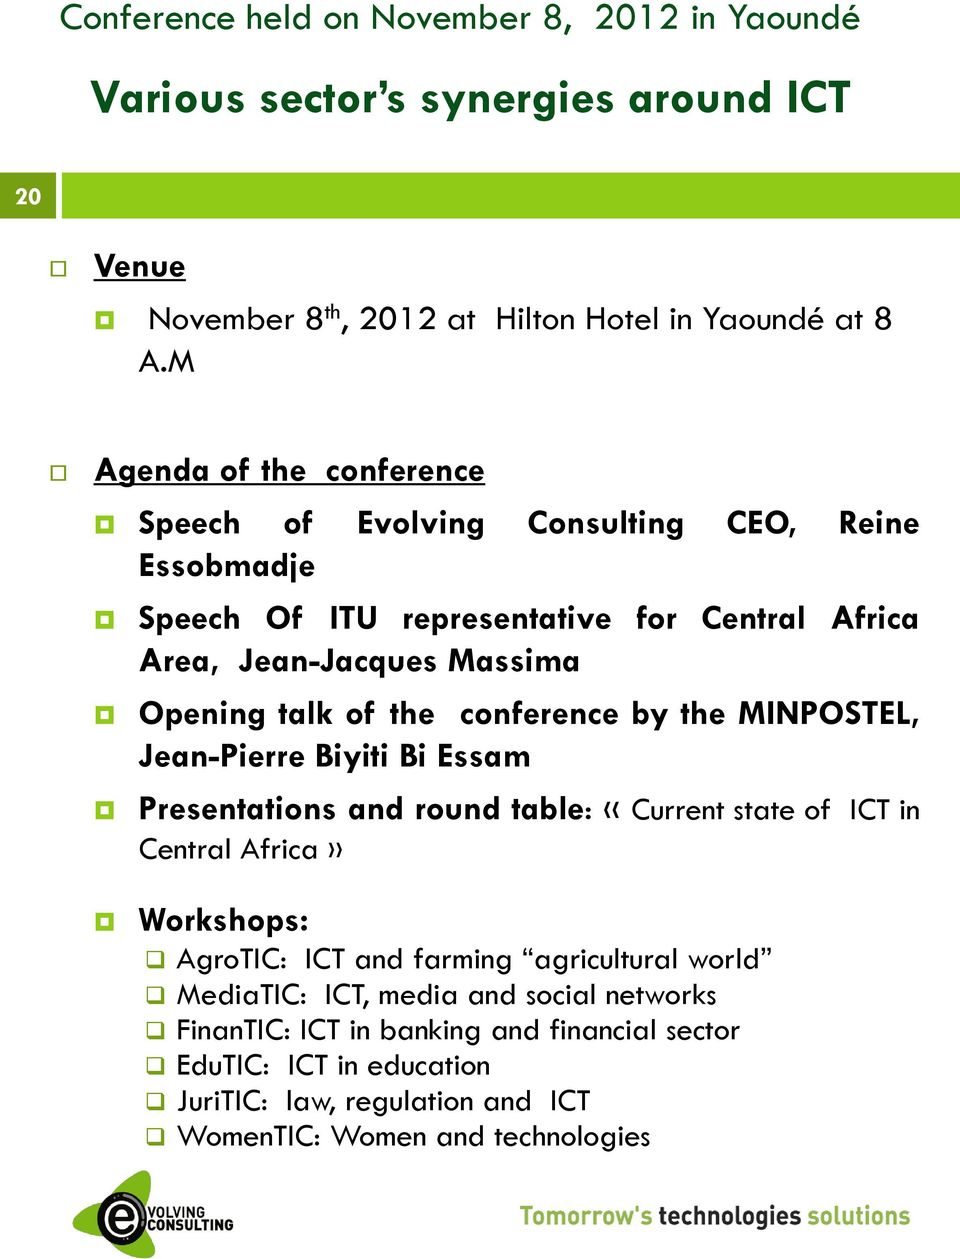 the conference by the MINPOSTEL, Jean-Pierre Biyiti Bi Essam Presentations and round table: «Current state of ICT in Central Africa» Workshops: AgroTIC: ICT and farming